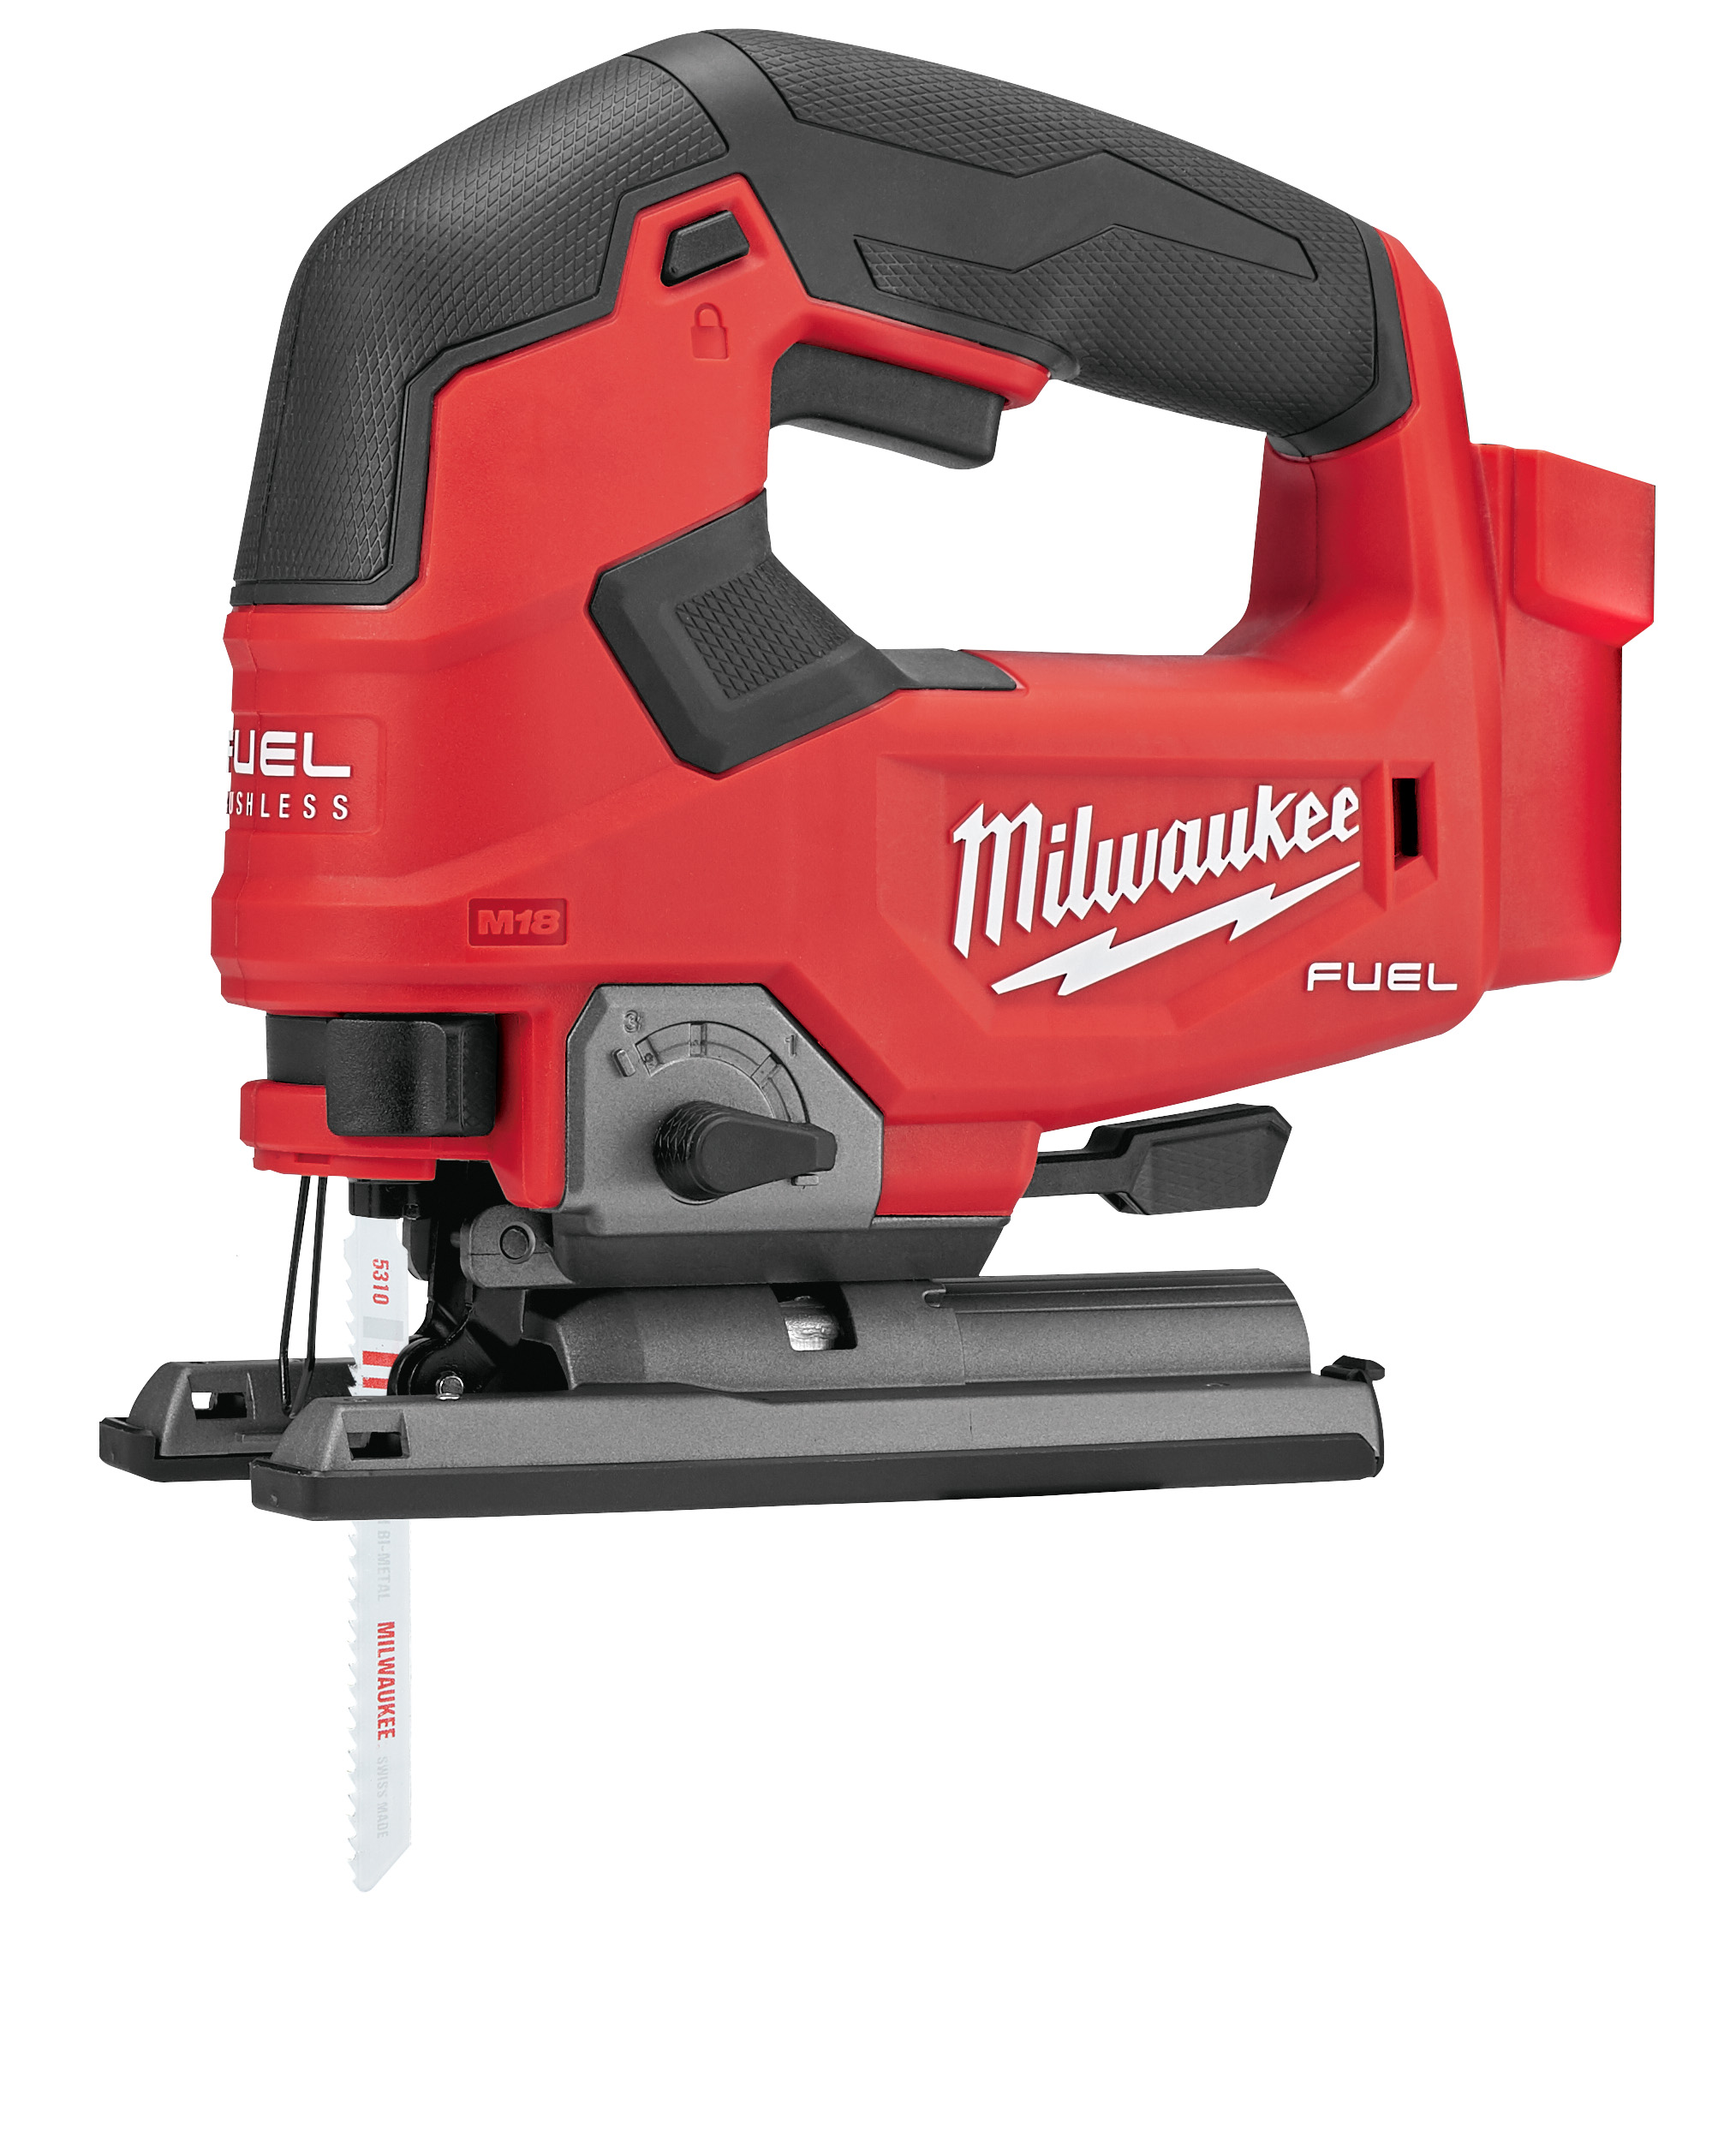 Milwaukee 2737-20 M18™ FUEL™ D-handle Jig Saw (Bare)